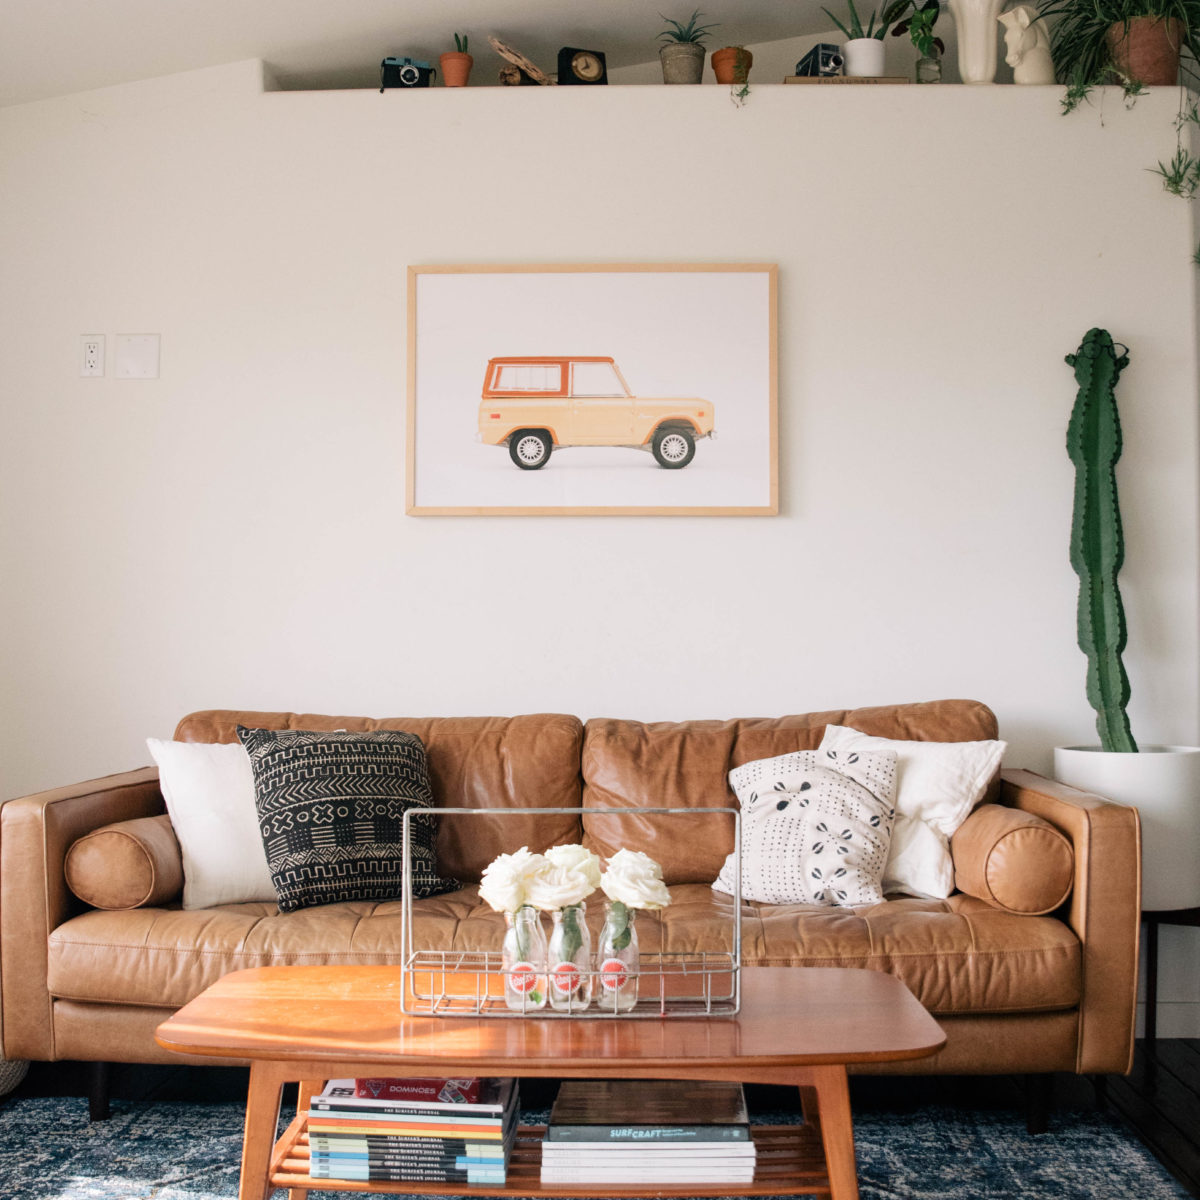 Hailey Andreson Interviews me about my Home